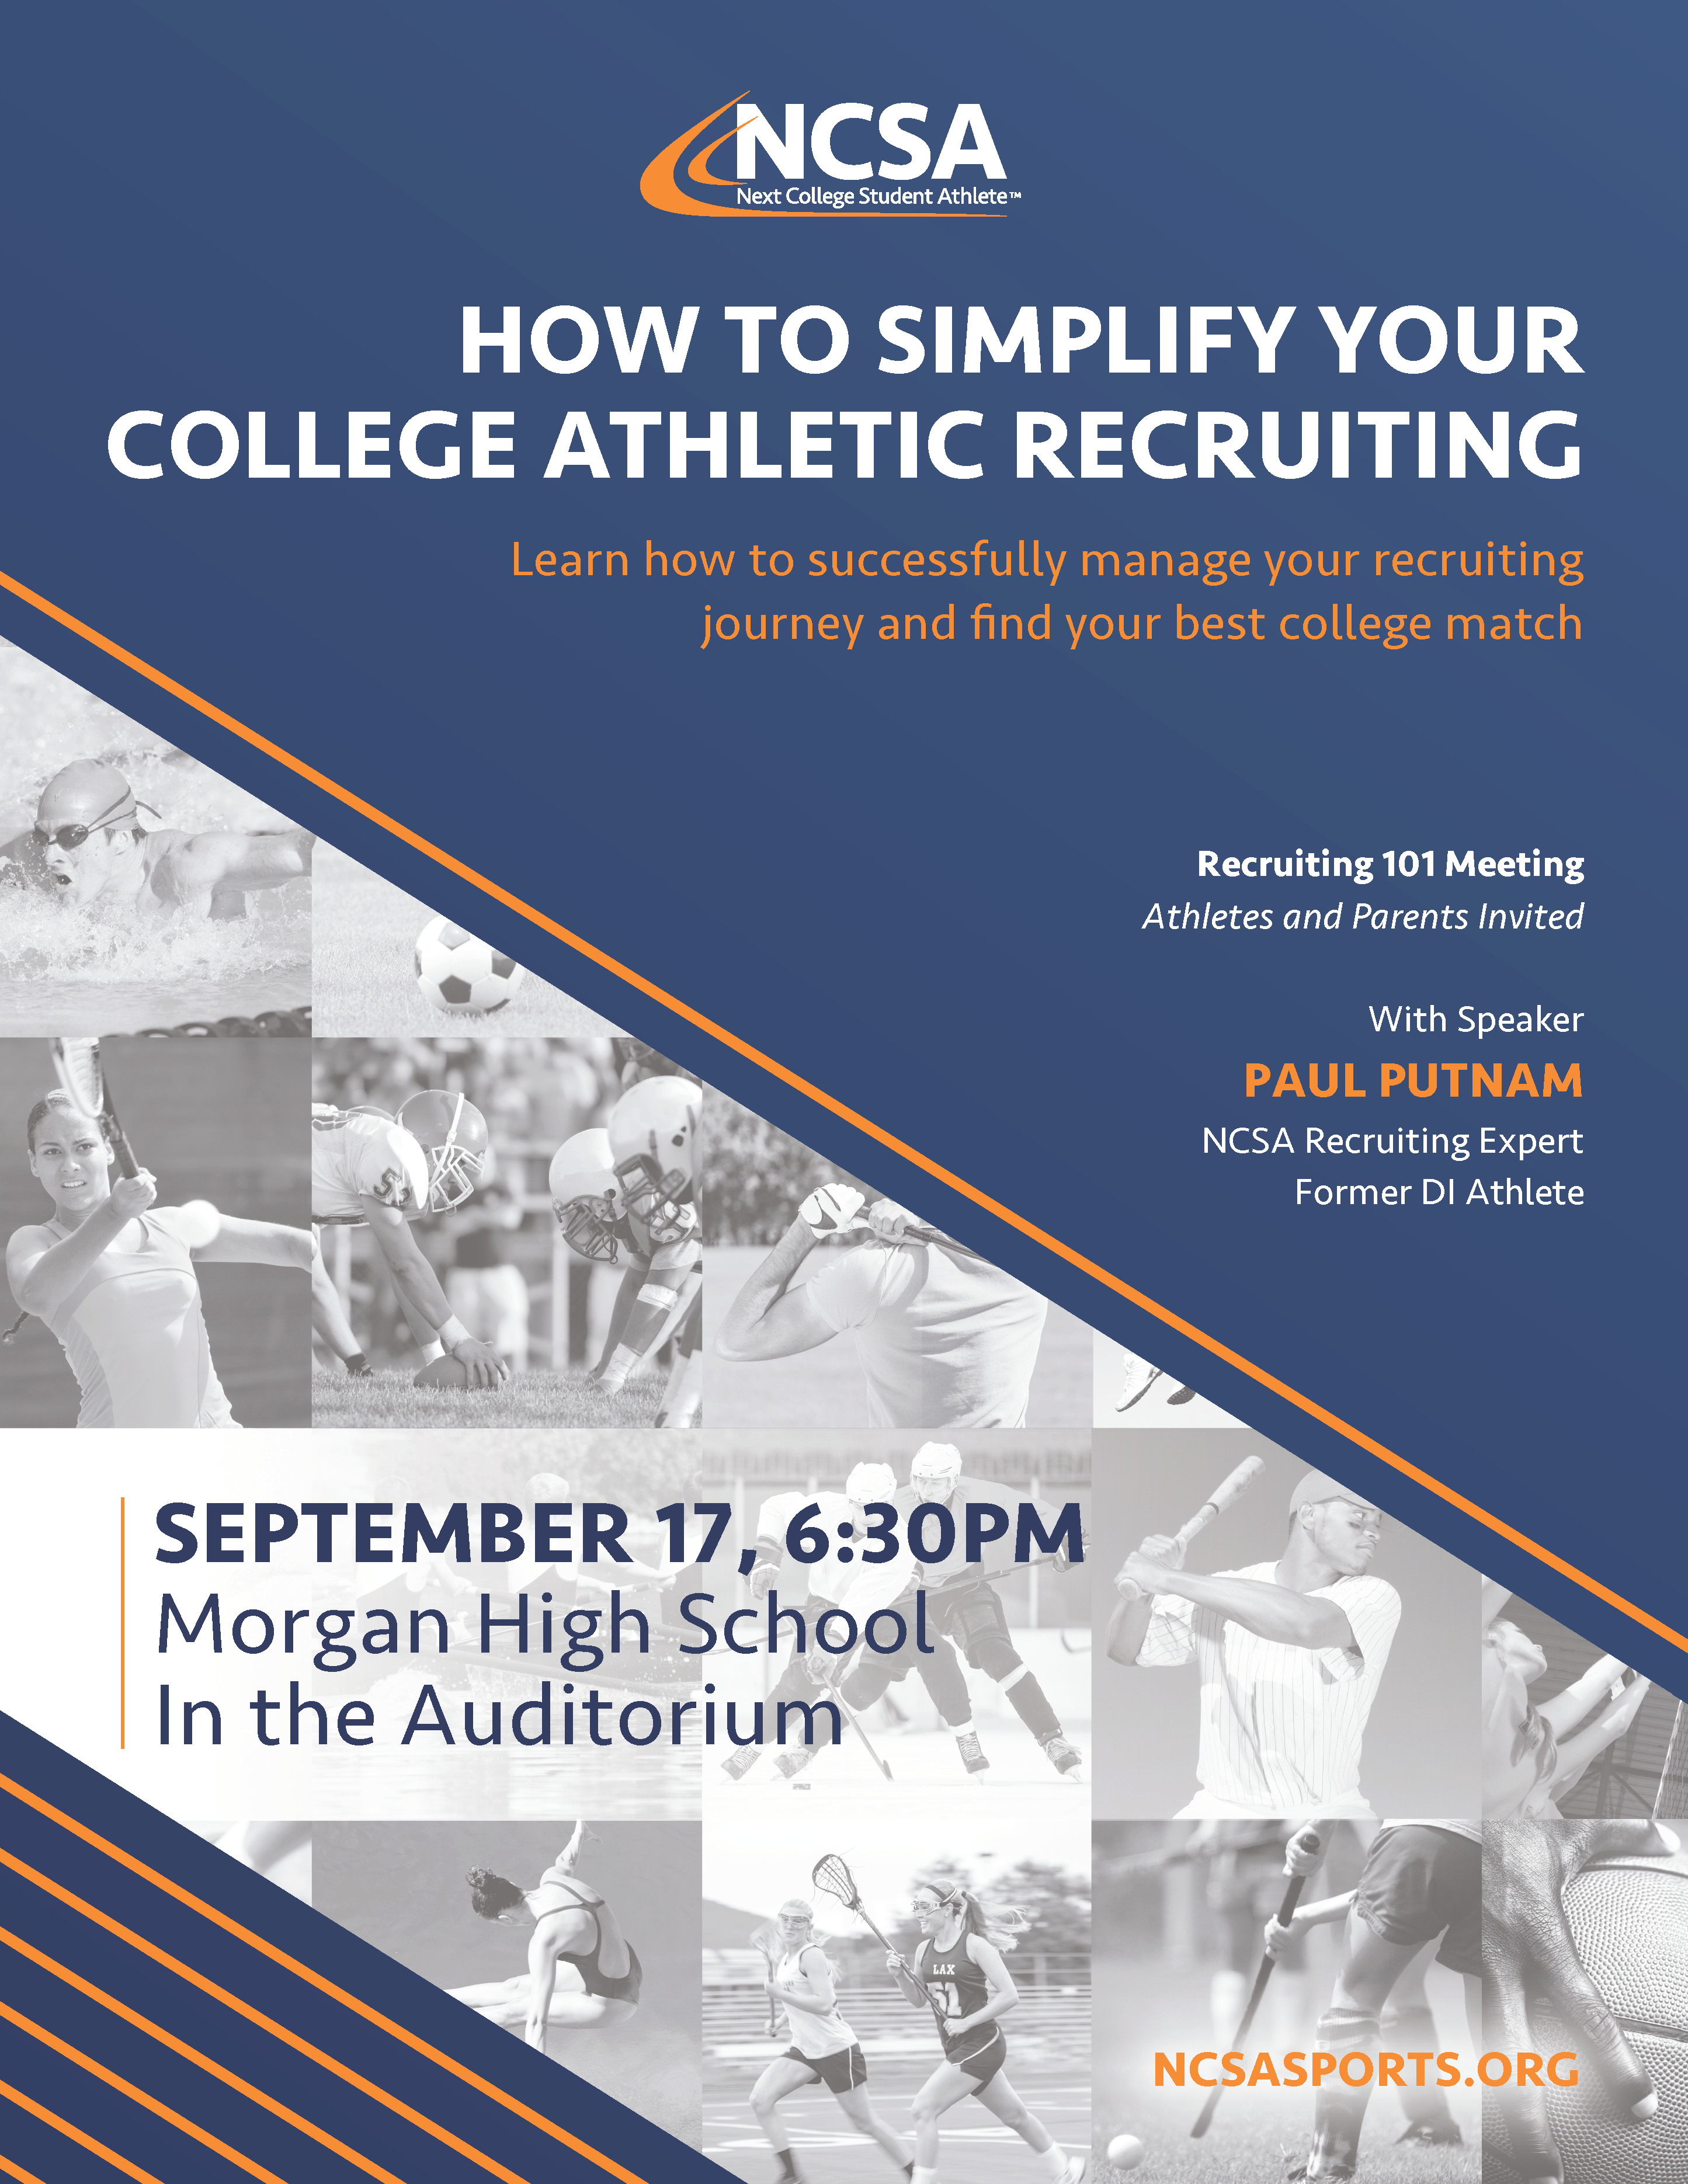 How to Simplify Your College Athletic Recruiting Presentation